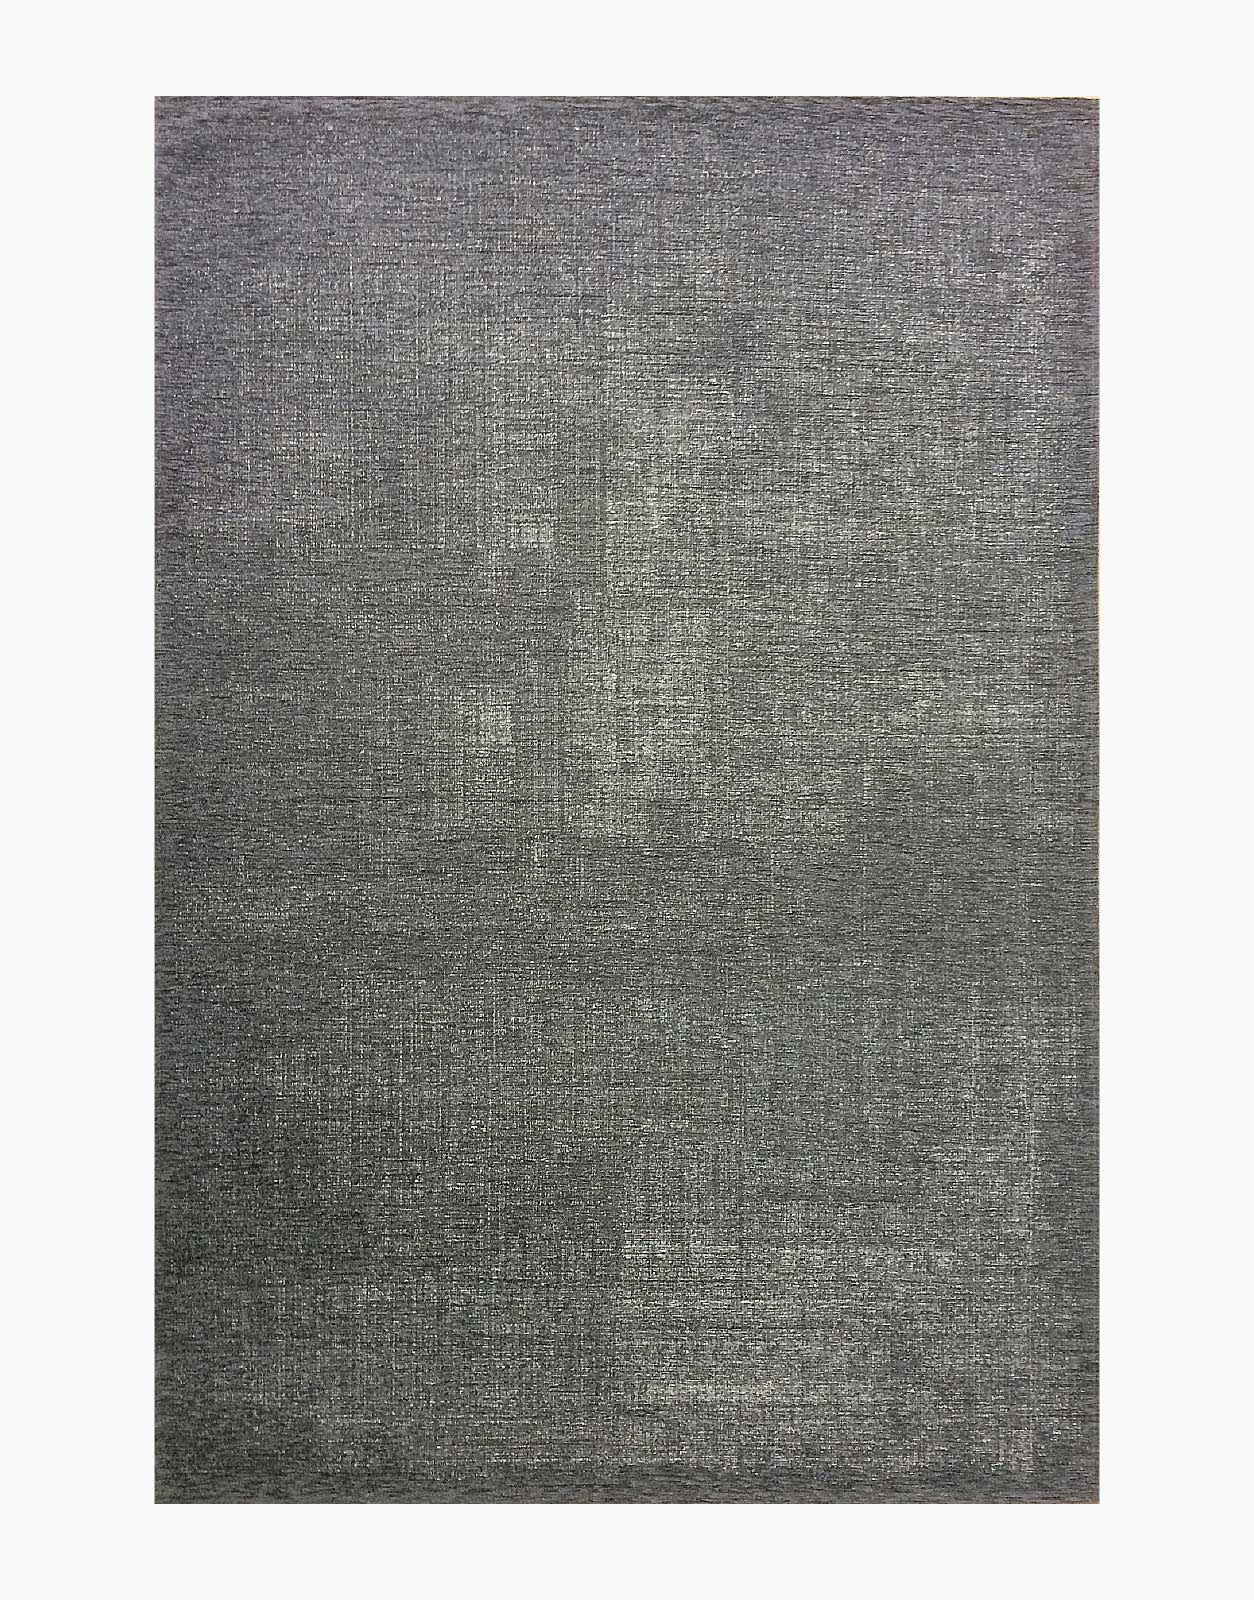 Canapé Pas Cher Valence Grey Valence Carpet Solution Design Fr Furniture Lighting Decoration